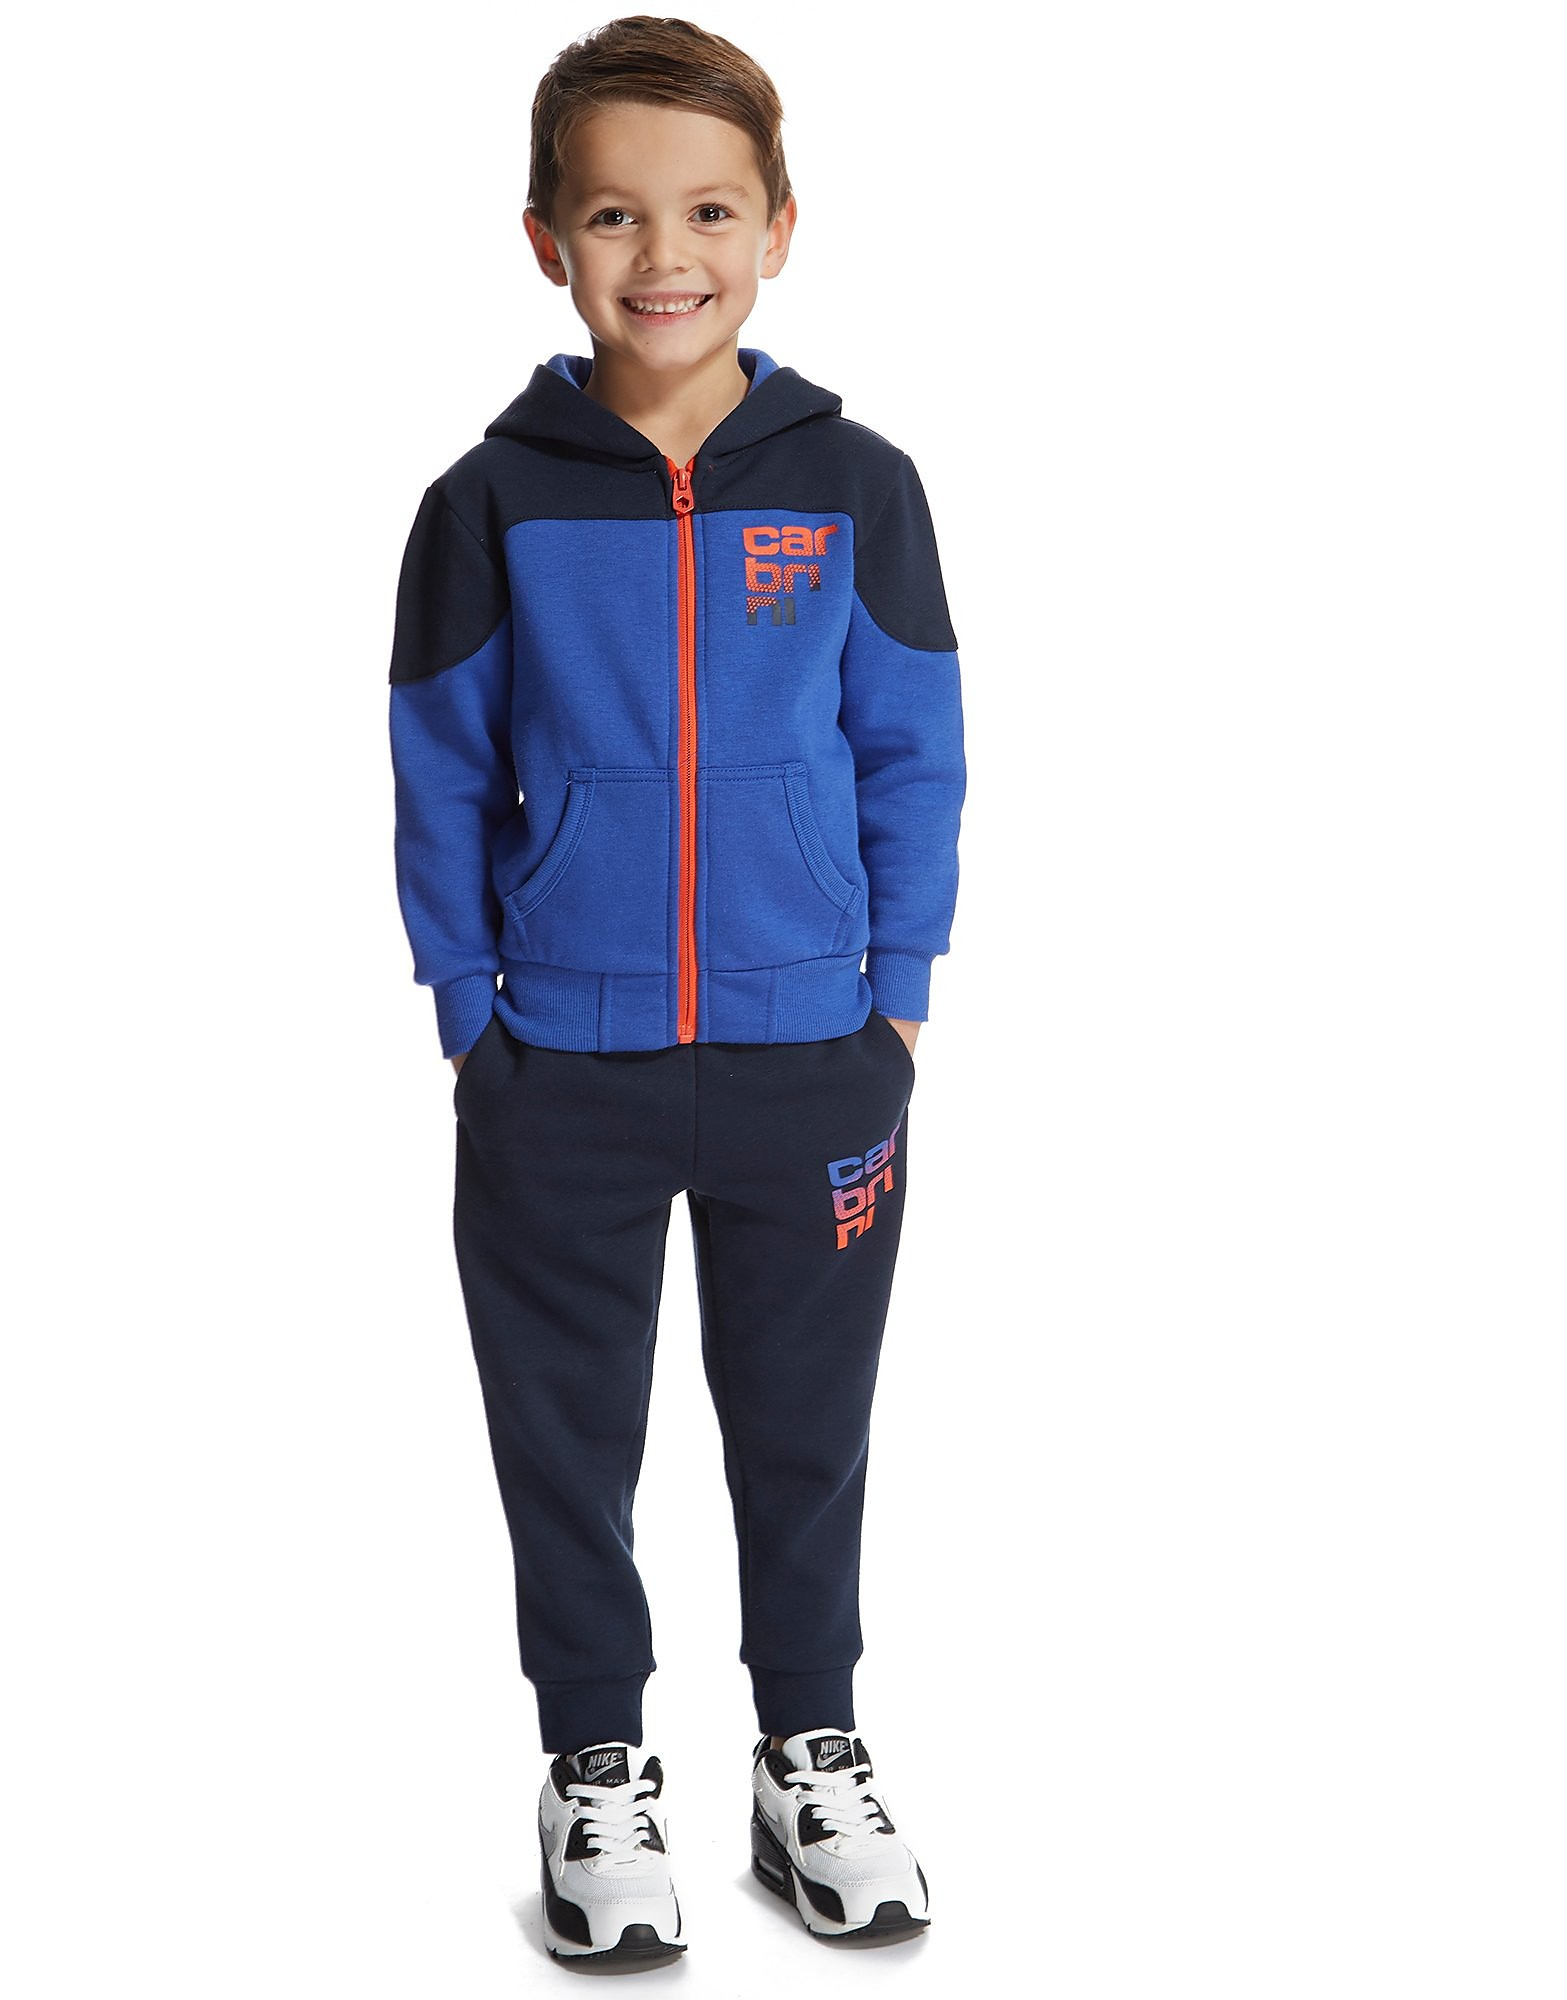 Carbrini Rotor 2 Print Suit Children